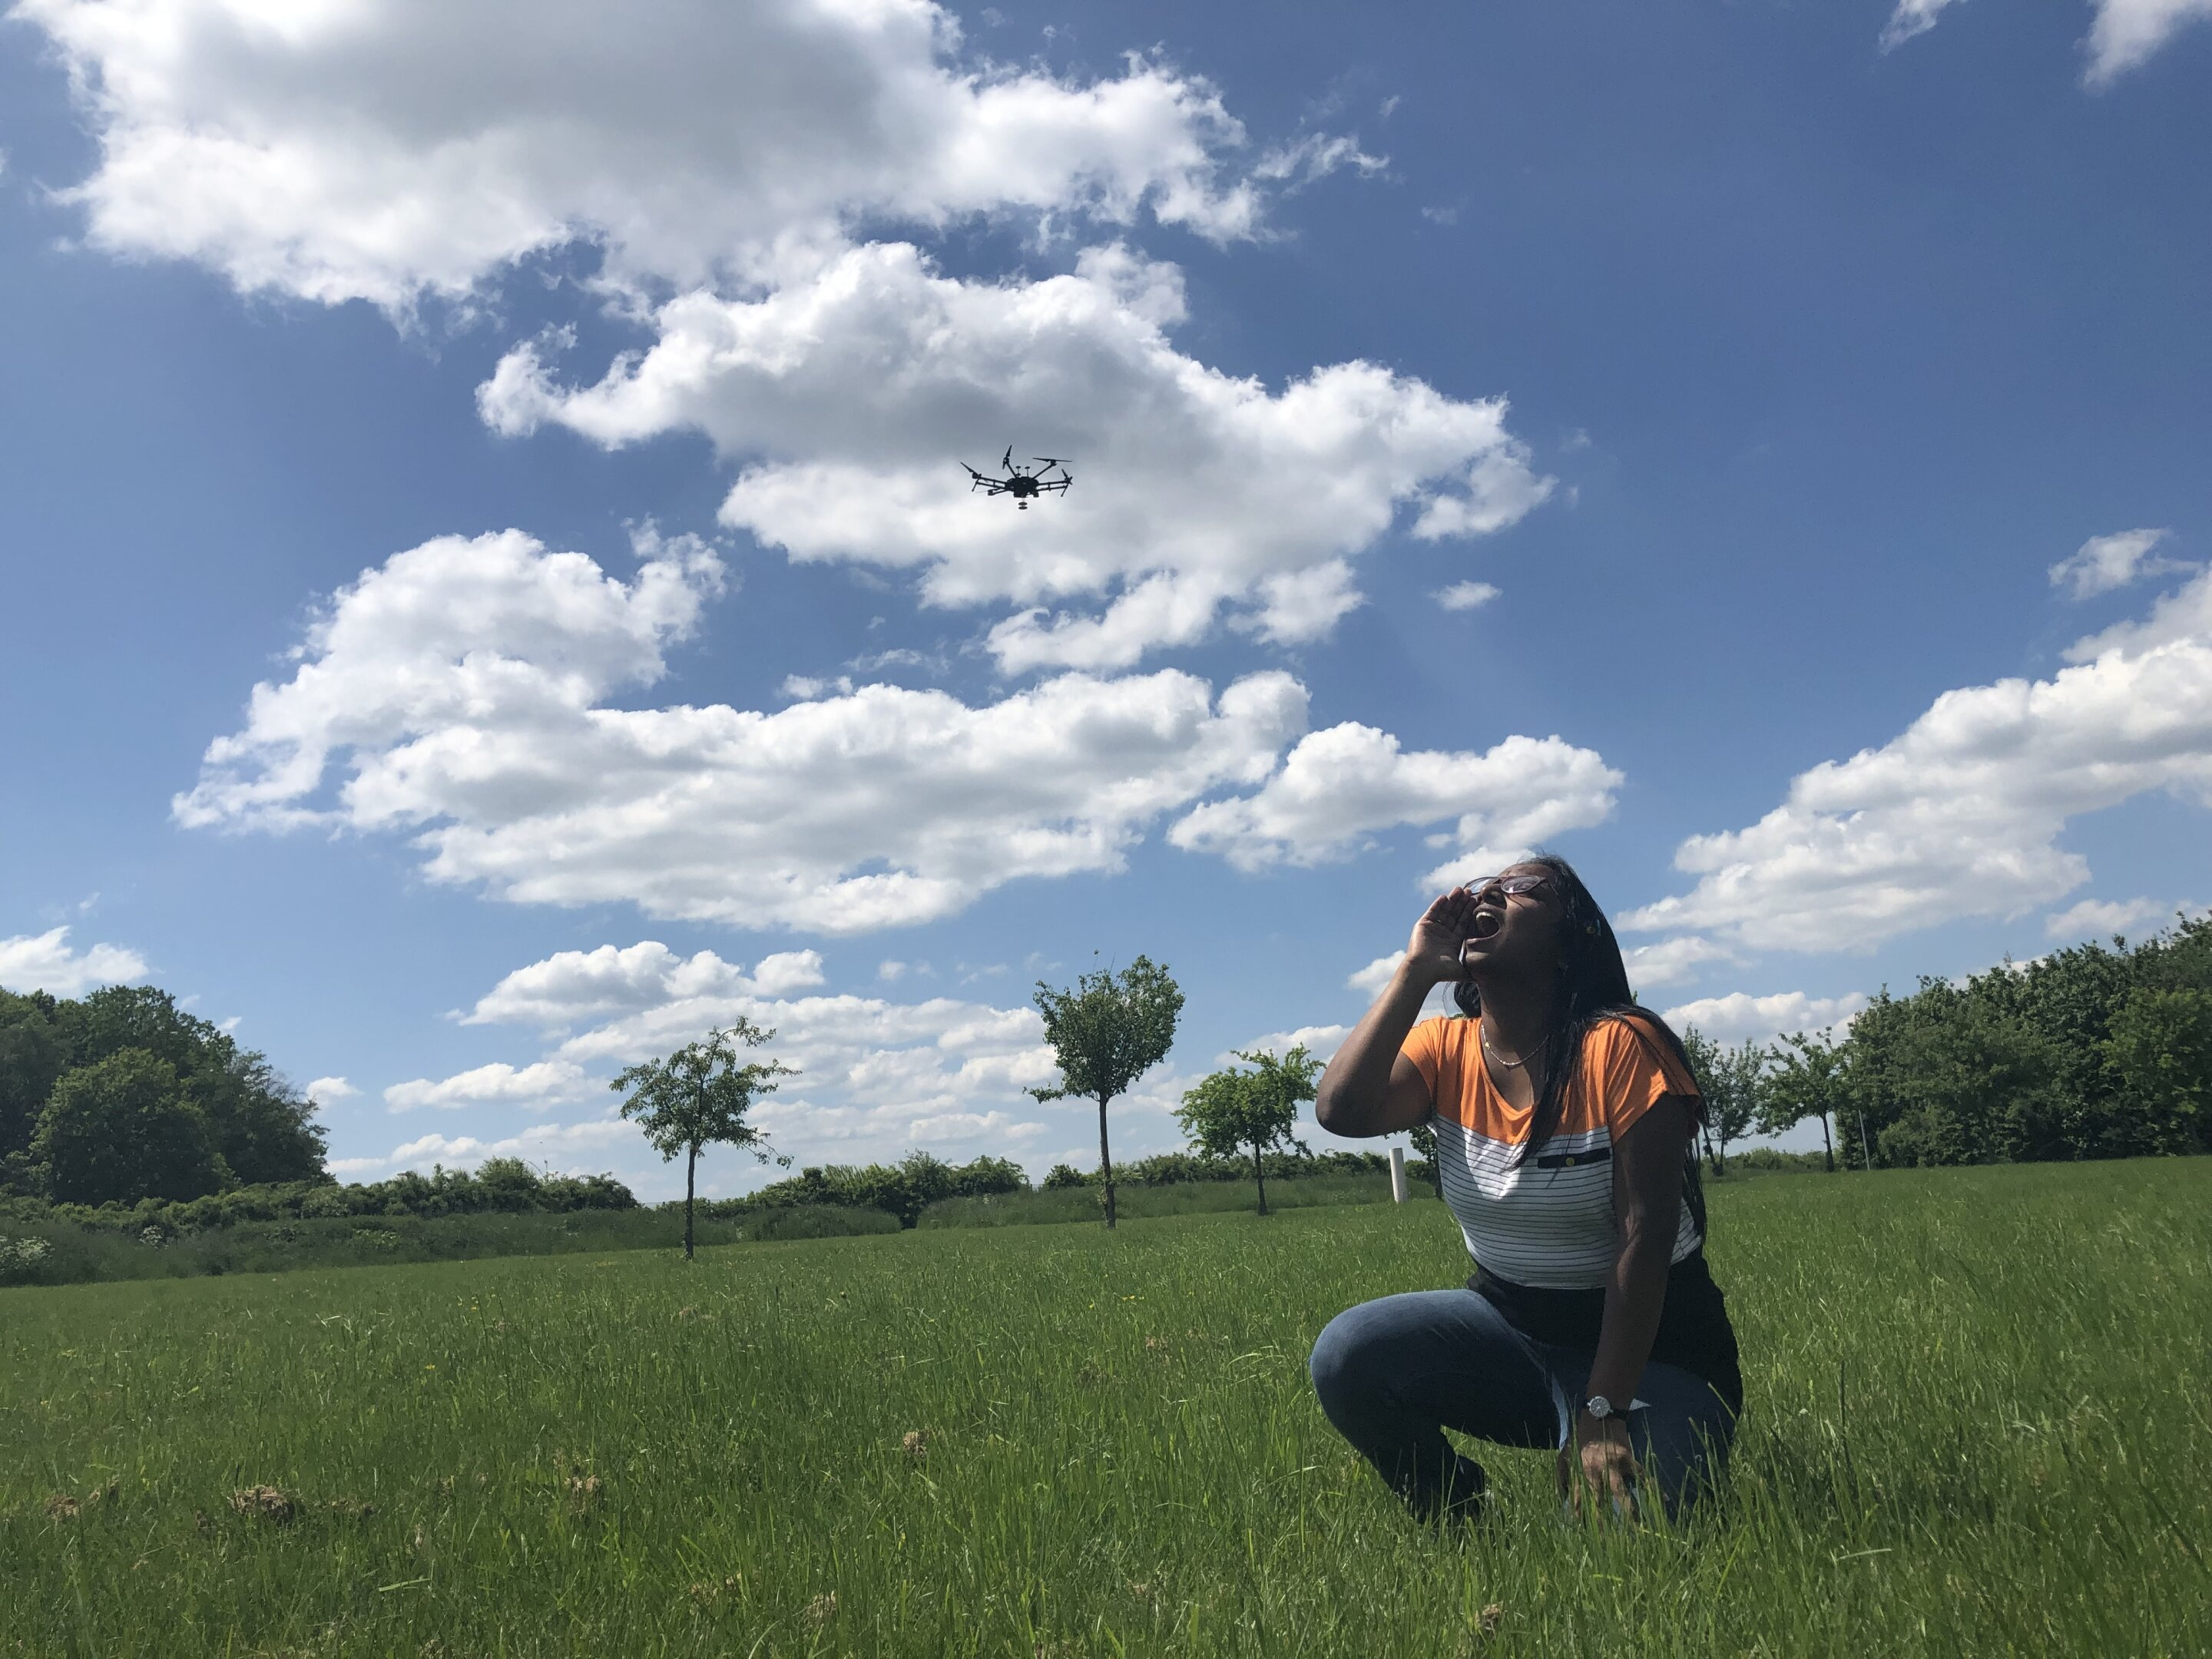 Teaching drones to hear screams from catastrophe victims